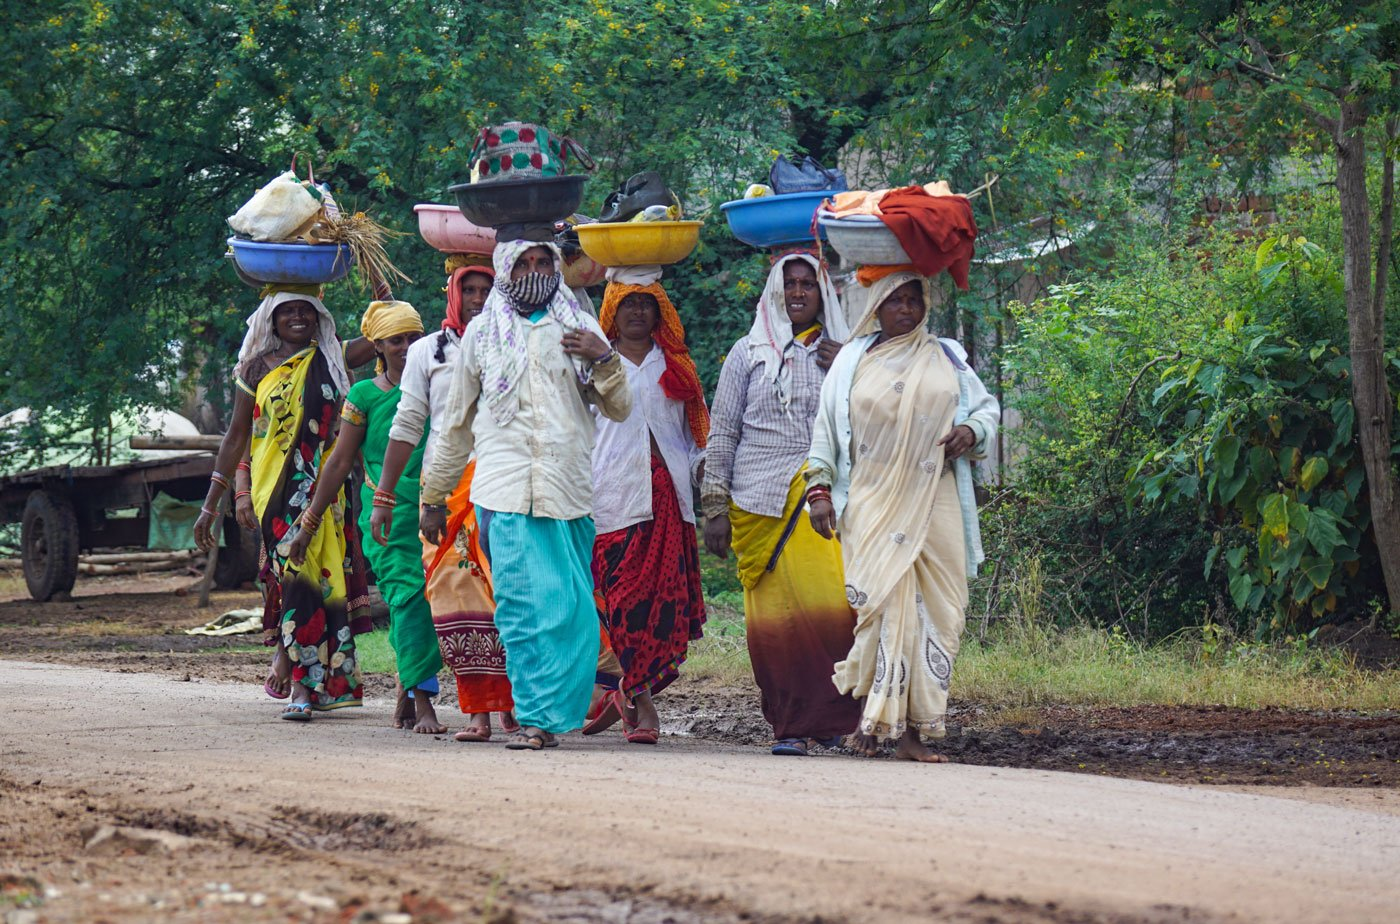 Labourers from Baliyara village, not far from Dhamtari town, on their way to paddy fields to plant saplings